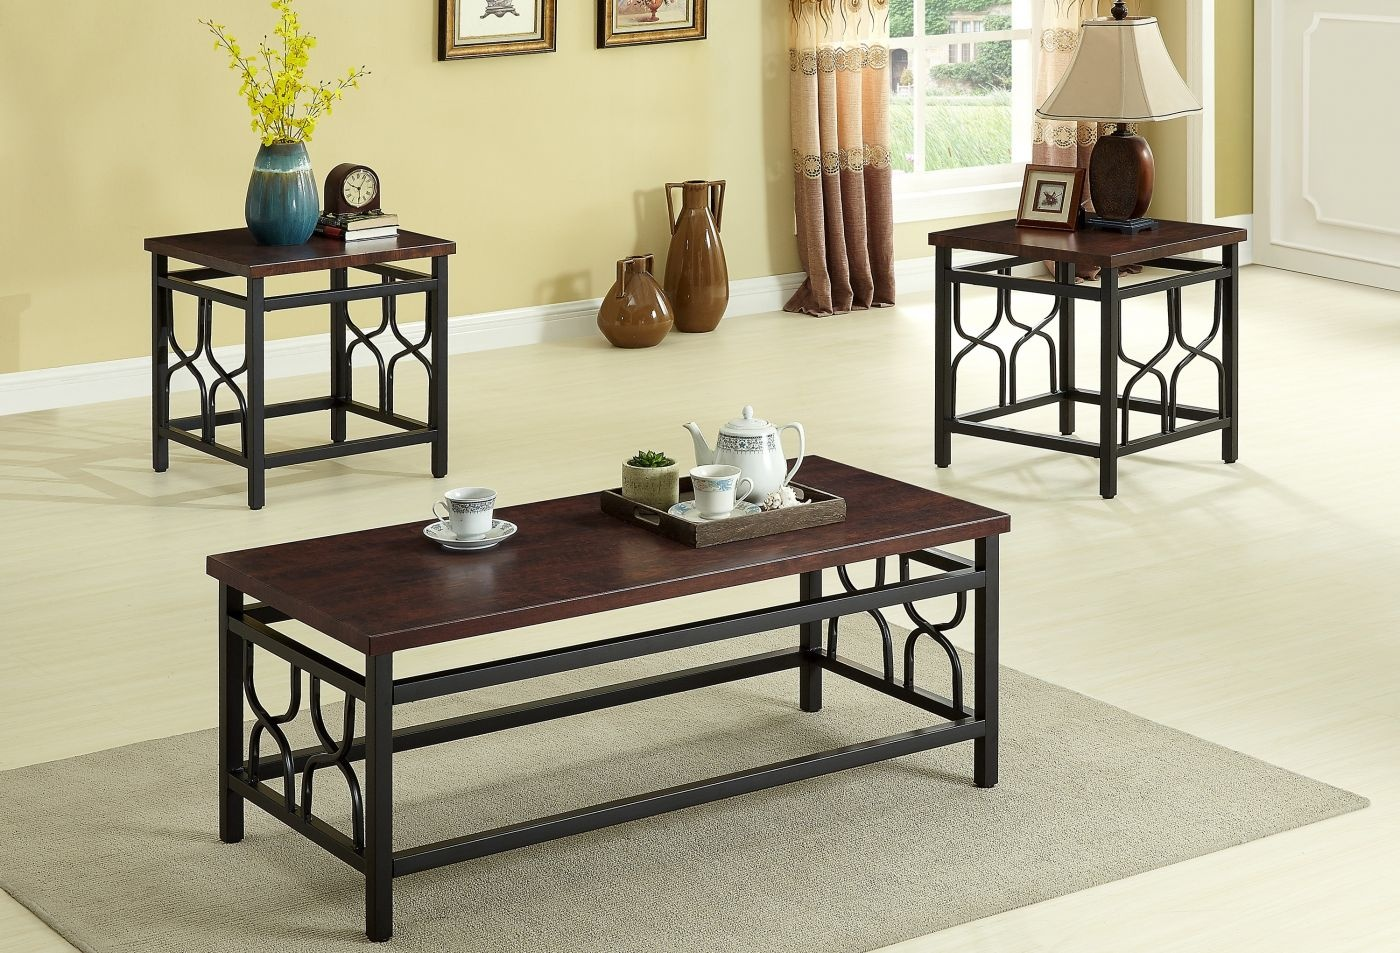 Benjamin C M 4021set 3 Piece Table Set Coffee And 2 End Tables